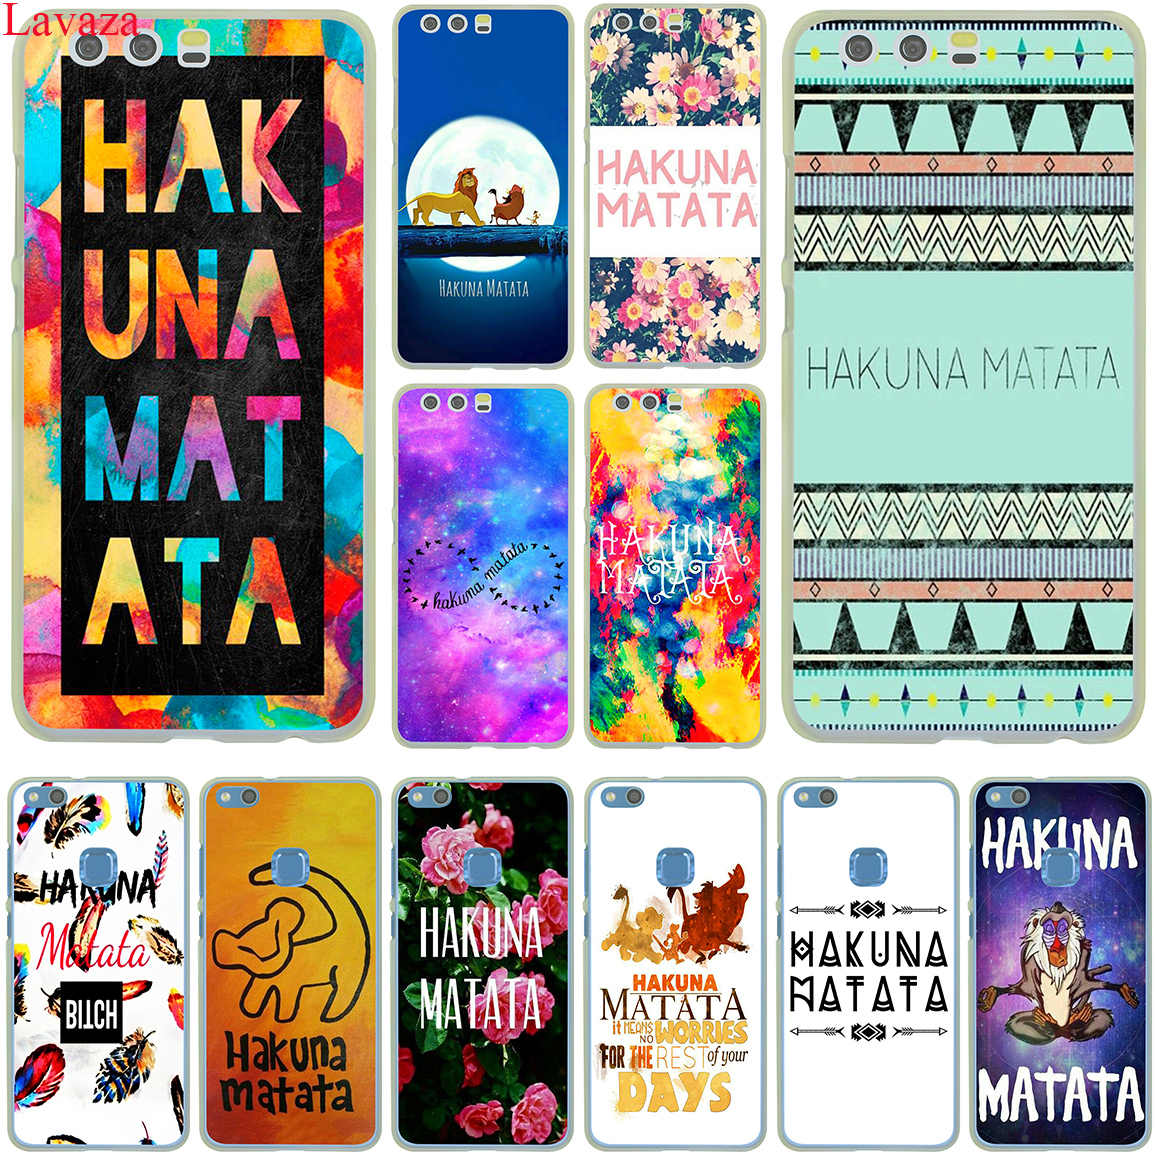 Lavaza hakuna matata The Lion King Case for Huawei P30 P20 P10 P9 Plus P8 Lite Mini 2017 2016 2015 P smart Z 2019